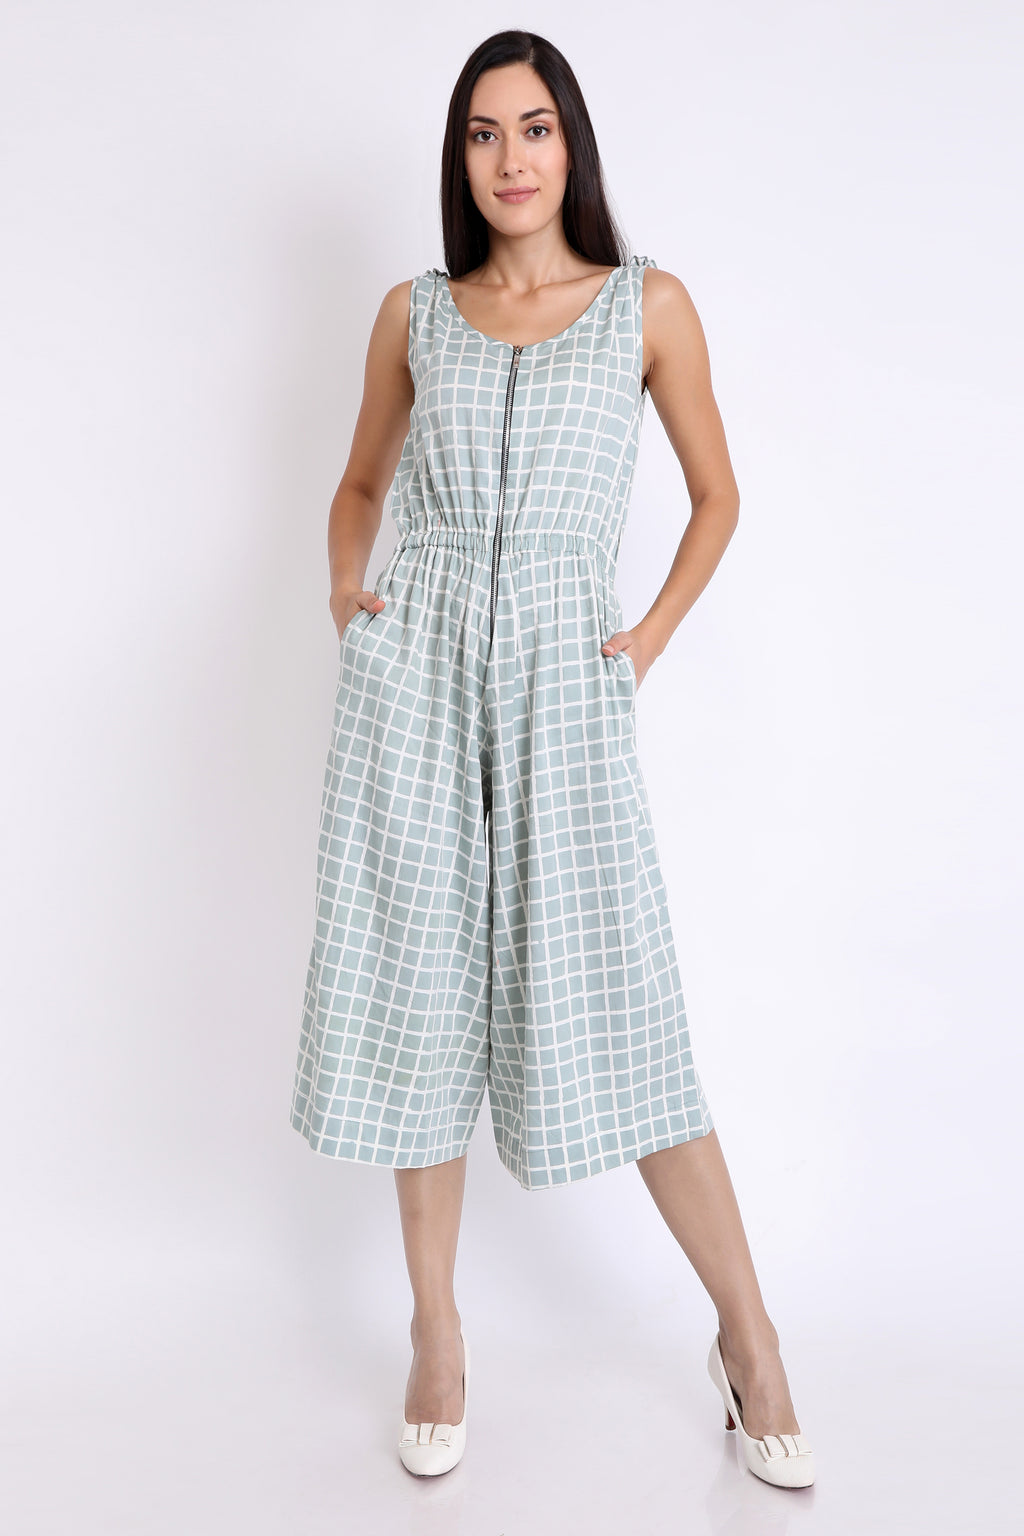 3X9T WOMENS COTTON SATIN CHECKS PASTEL PLAY SUIT - URU THE STORE